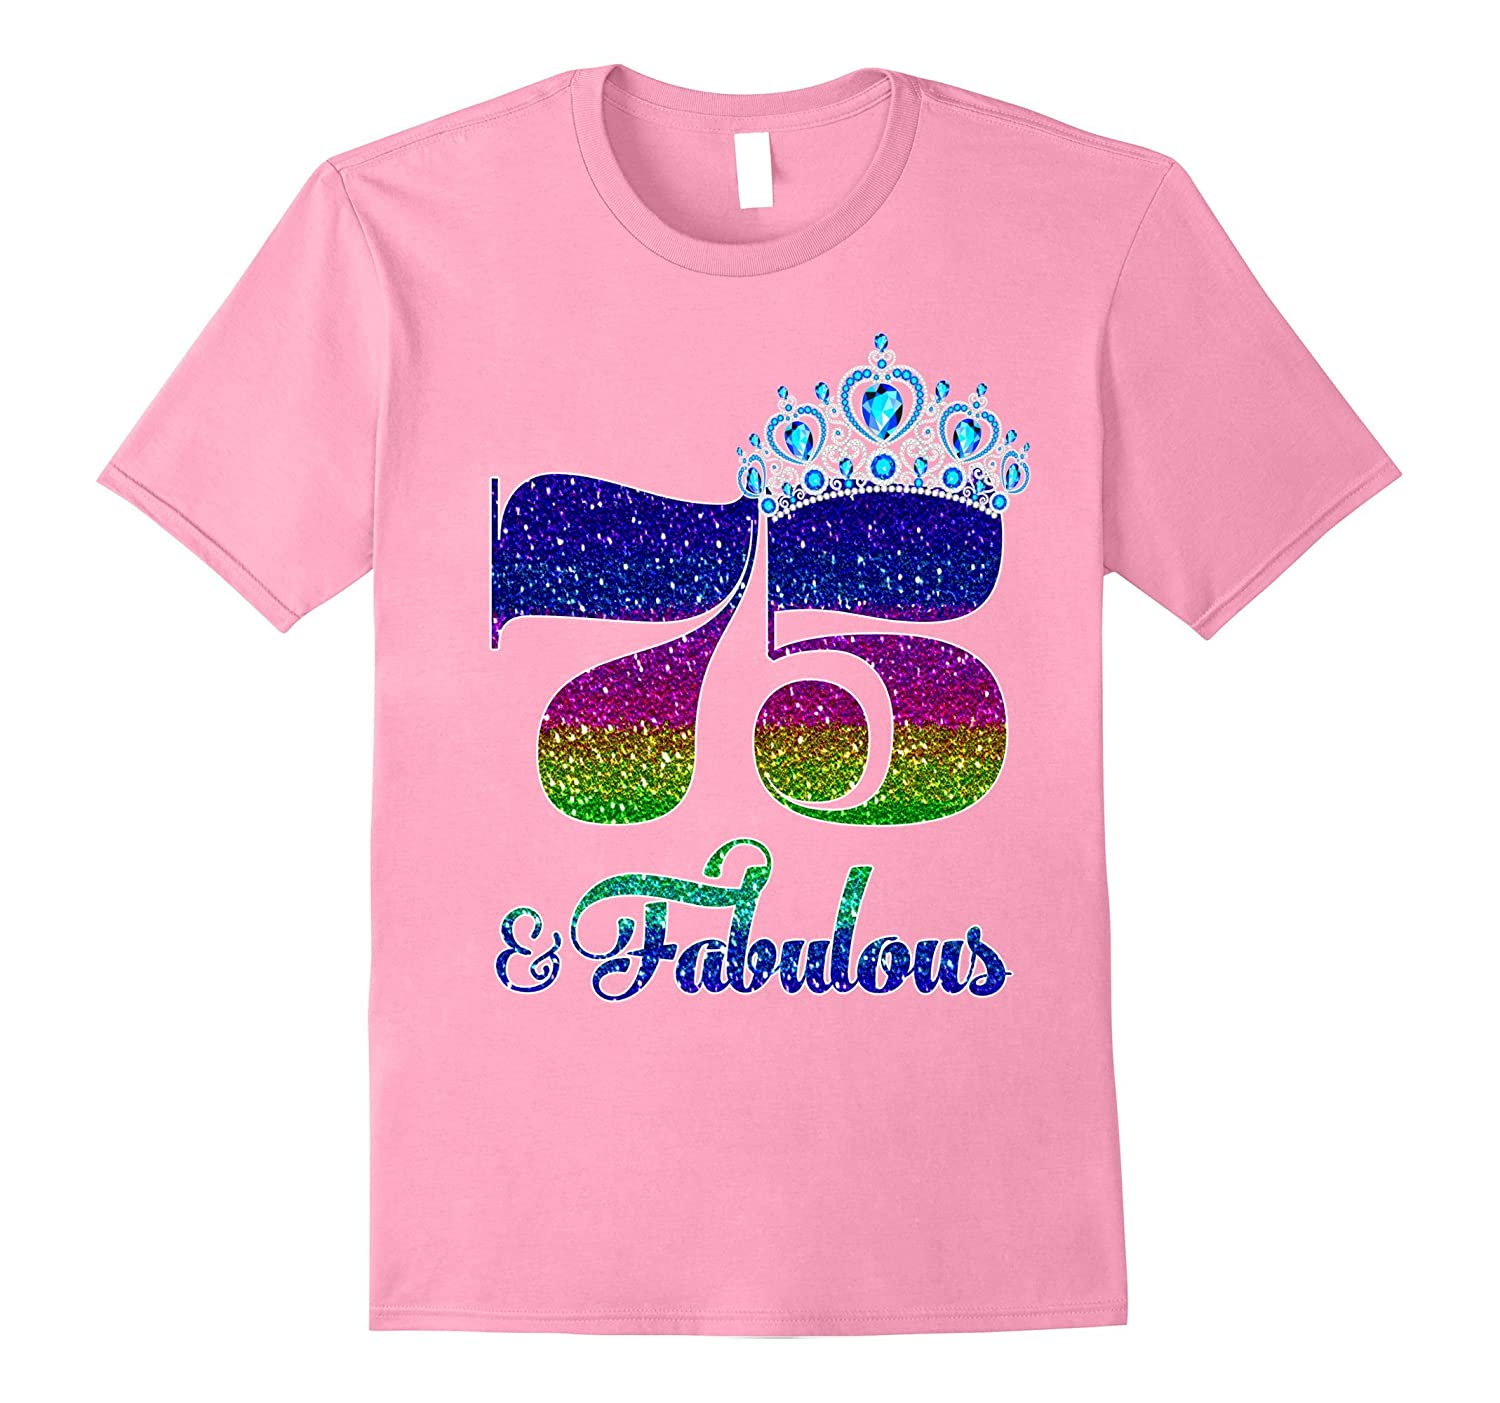 75 And Fabulous TShirt Queen 75th Birthday Shirt PL